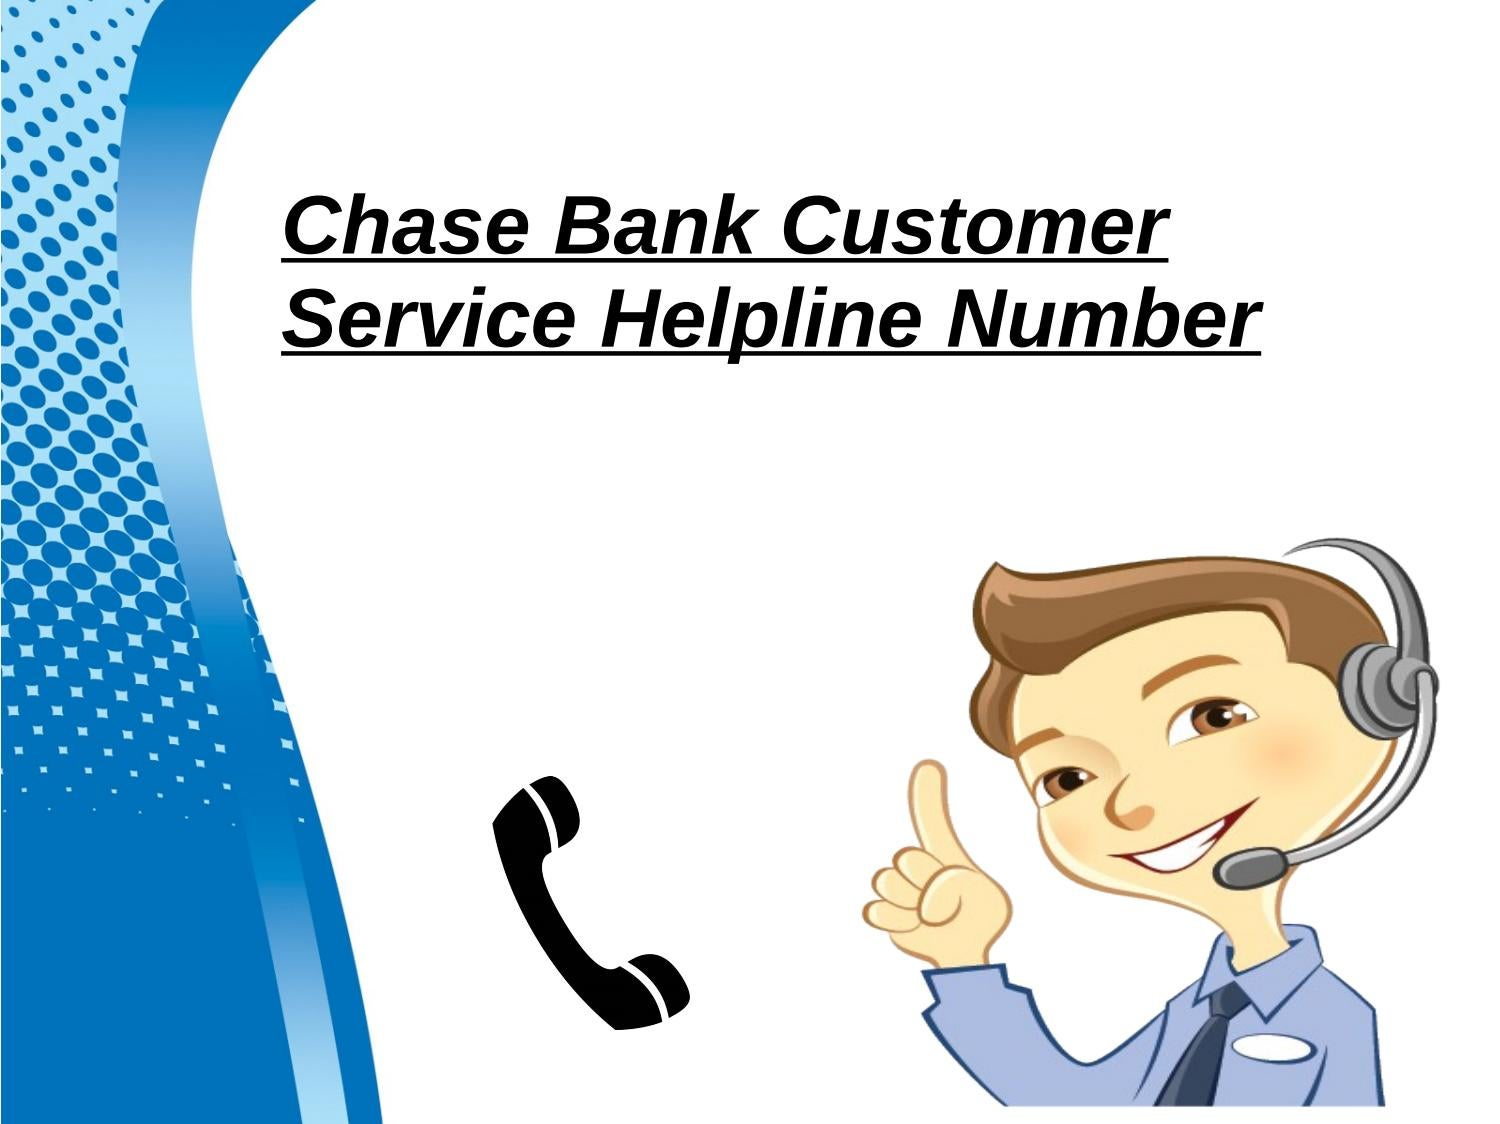 Chase bank customer service helpline number by mosesharris657 - issuu